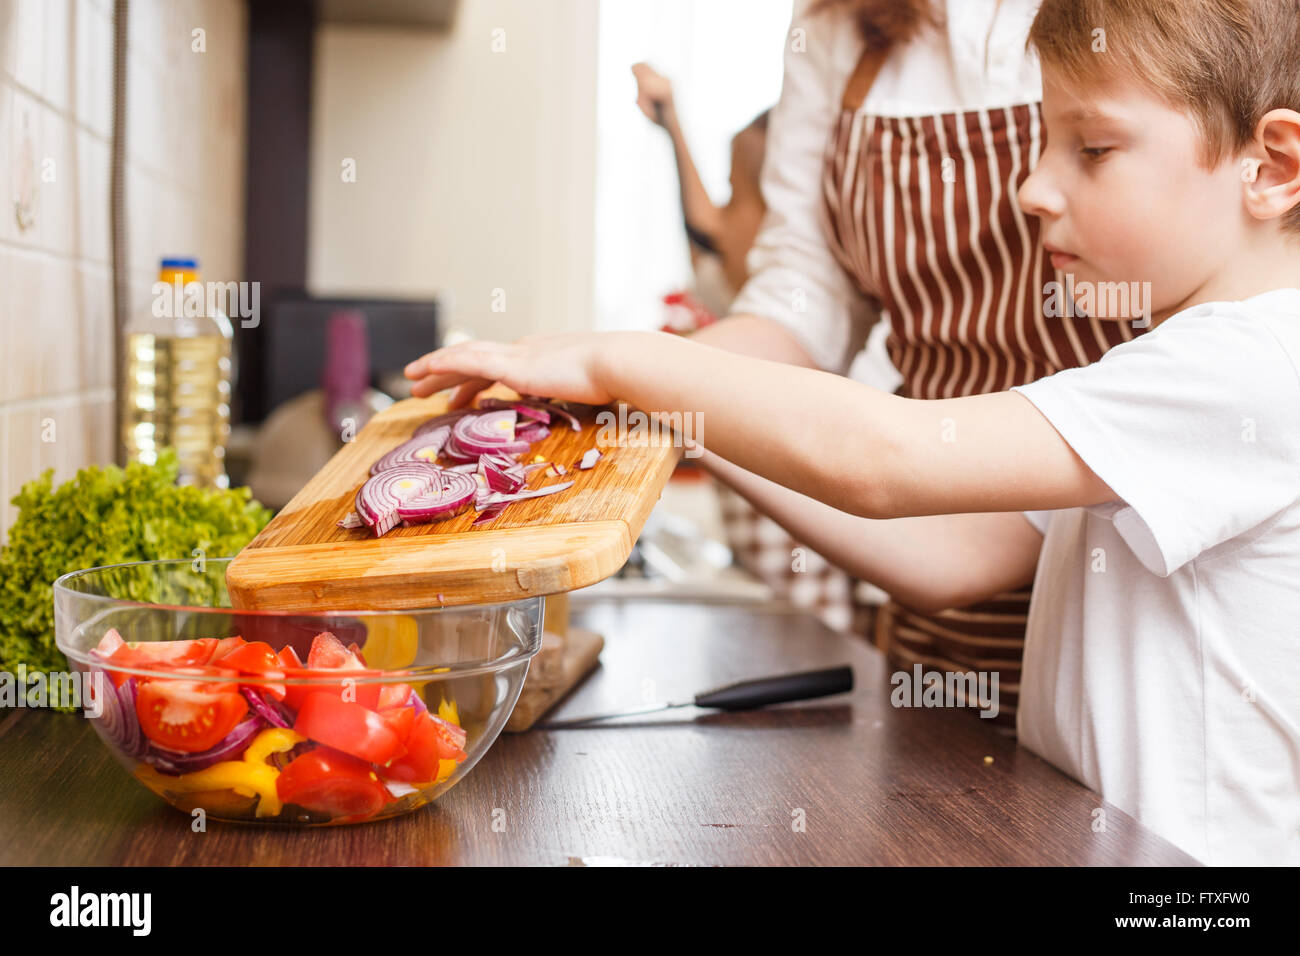 Family cooking kitchen - Family Cooking Background Small Boy Help His Mother With Cutting Onion For Salad In The Kitchen